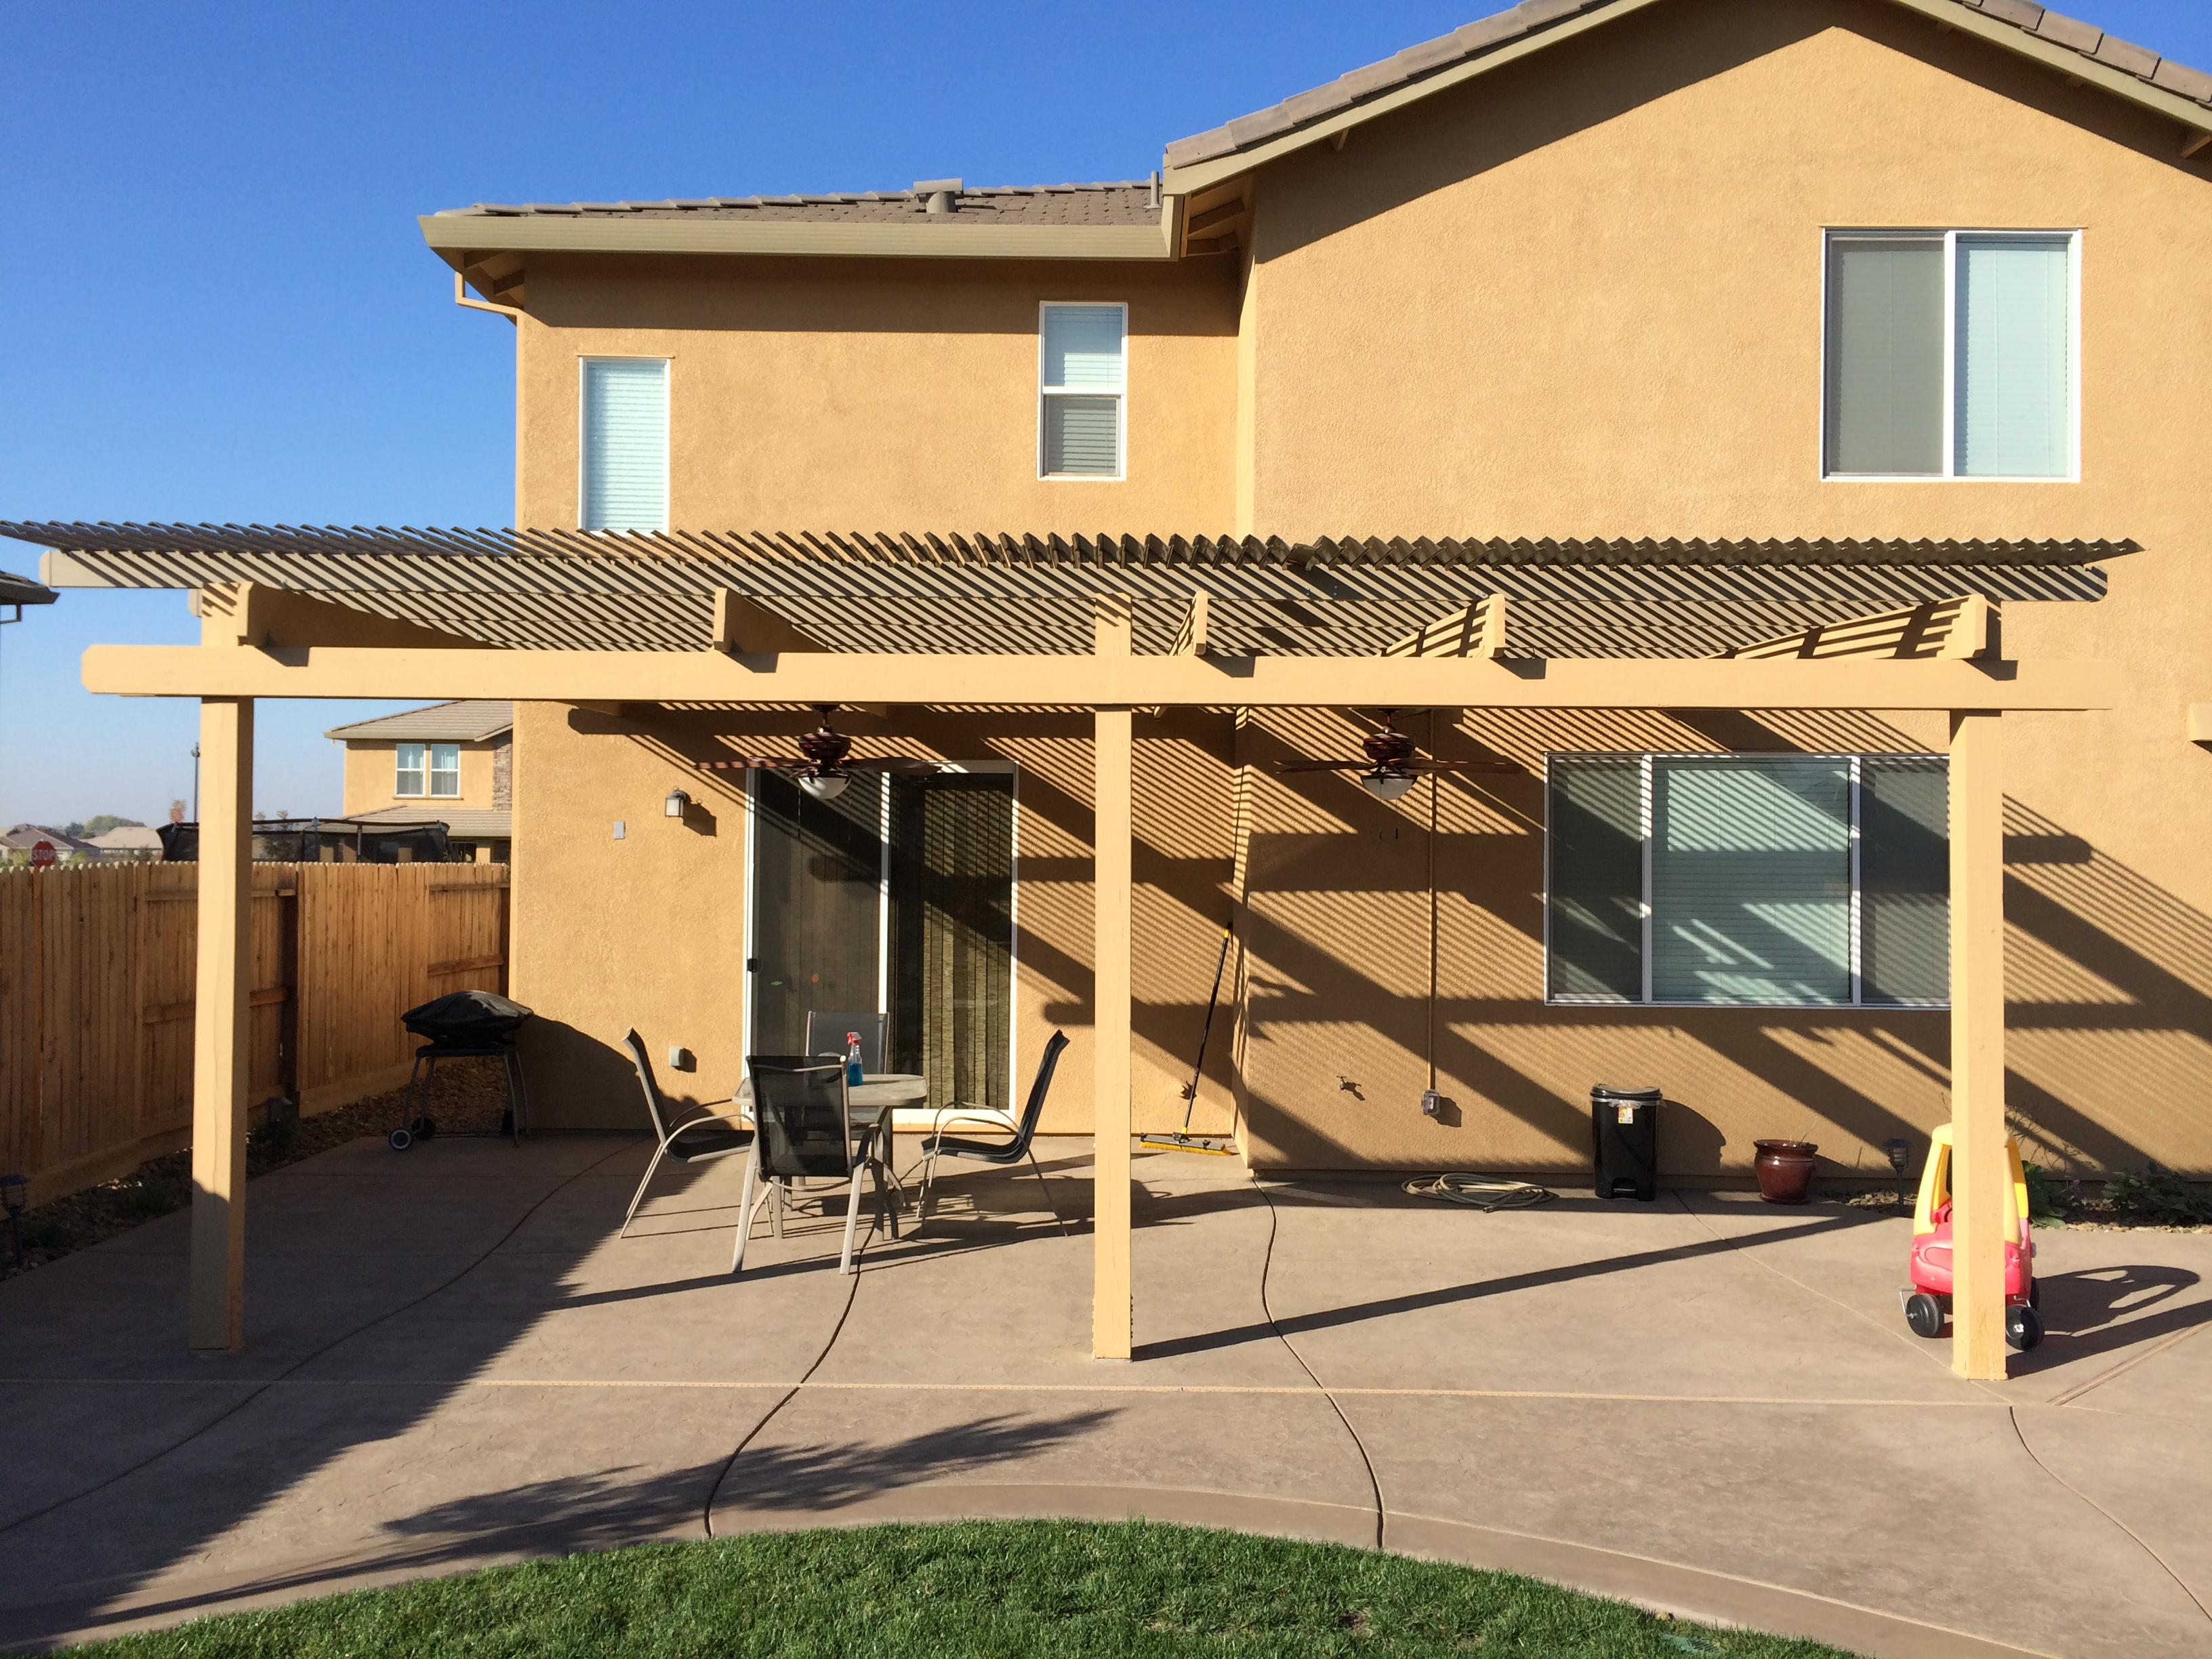 19.  Solara patio cover - Manteca